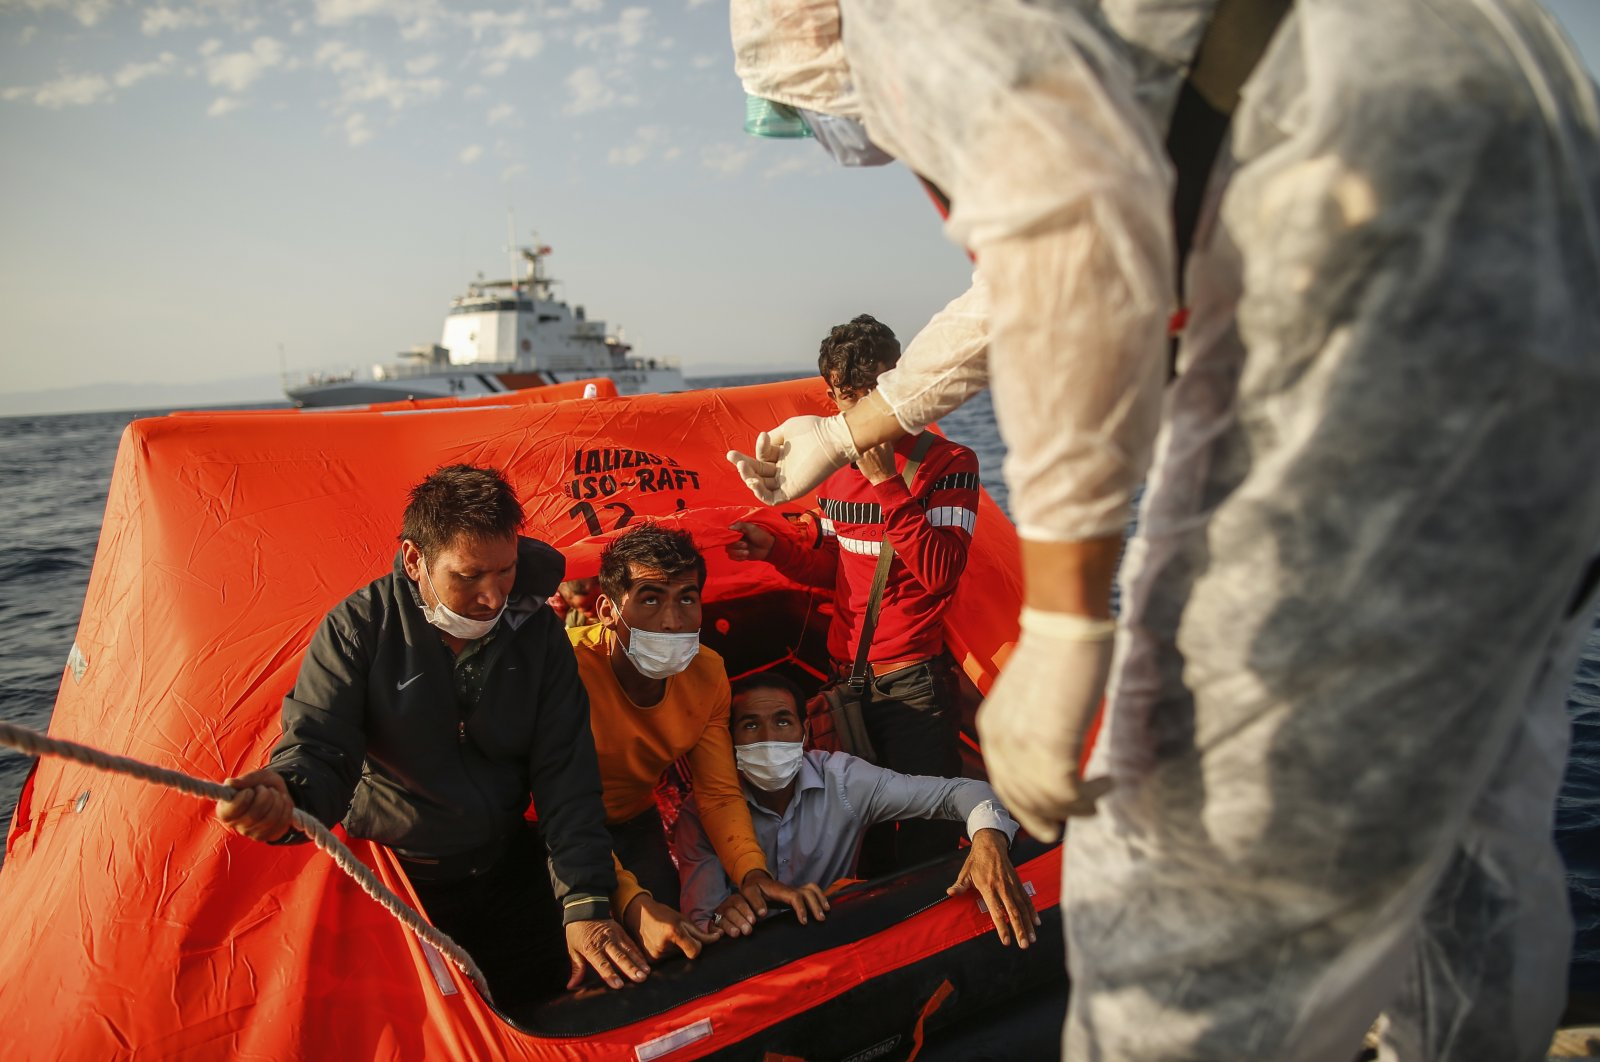 Turkish Coast Guard Command officers on their vessel, wearing protective gear to help prevent the spread of the coronavirus, talk to migrants on a life raft during a rescue operation in the Aegean Sea, between Turkey and Greece, Sept. 12, 2020. (AP File Photo)